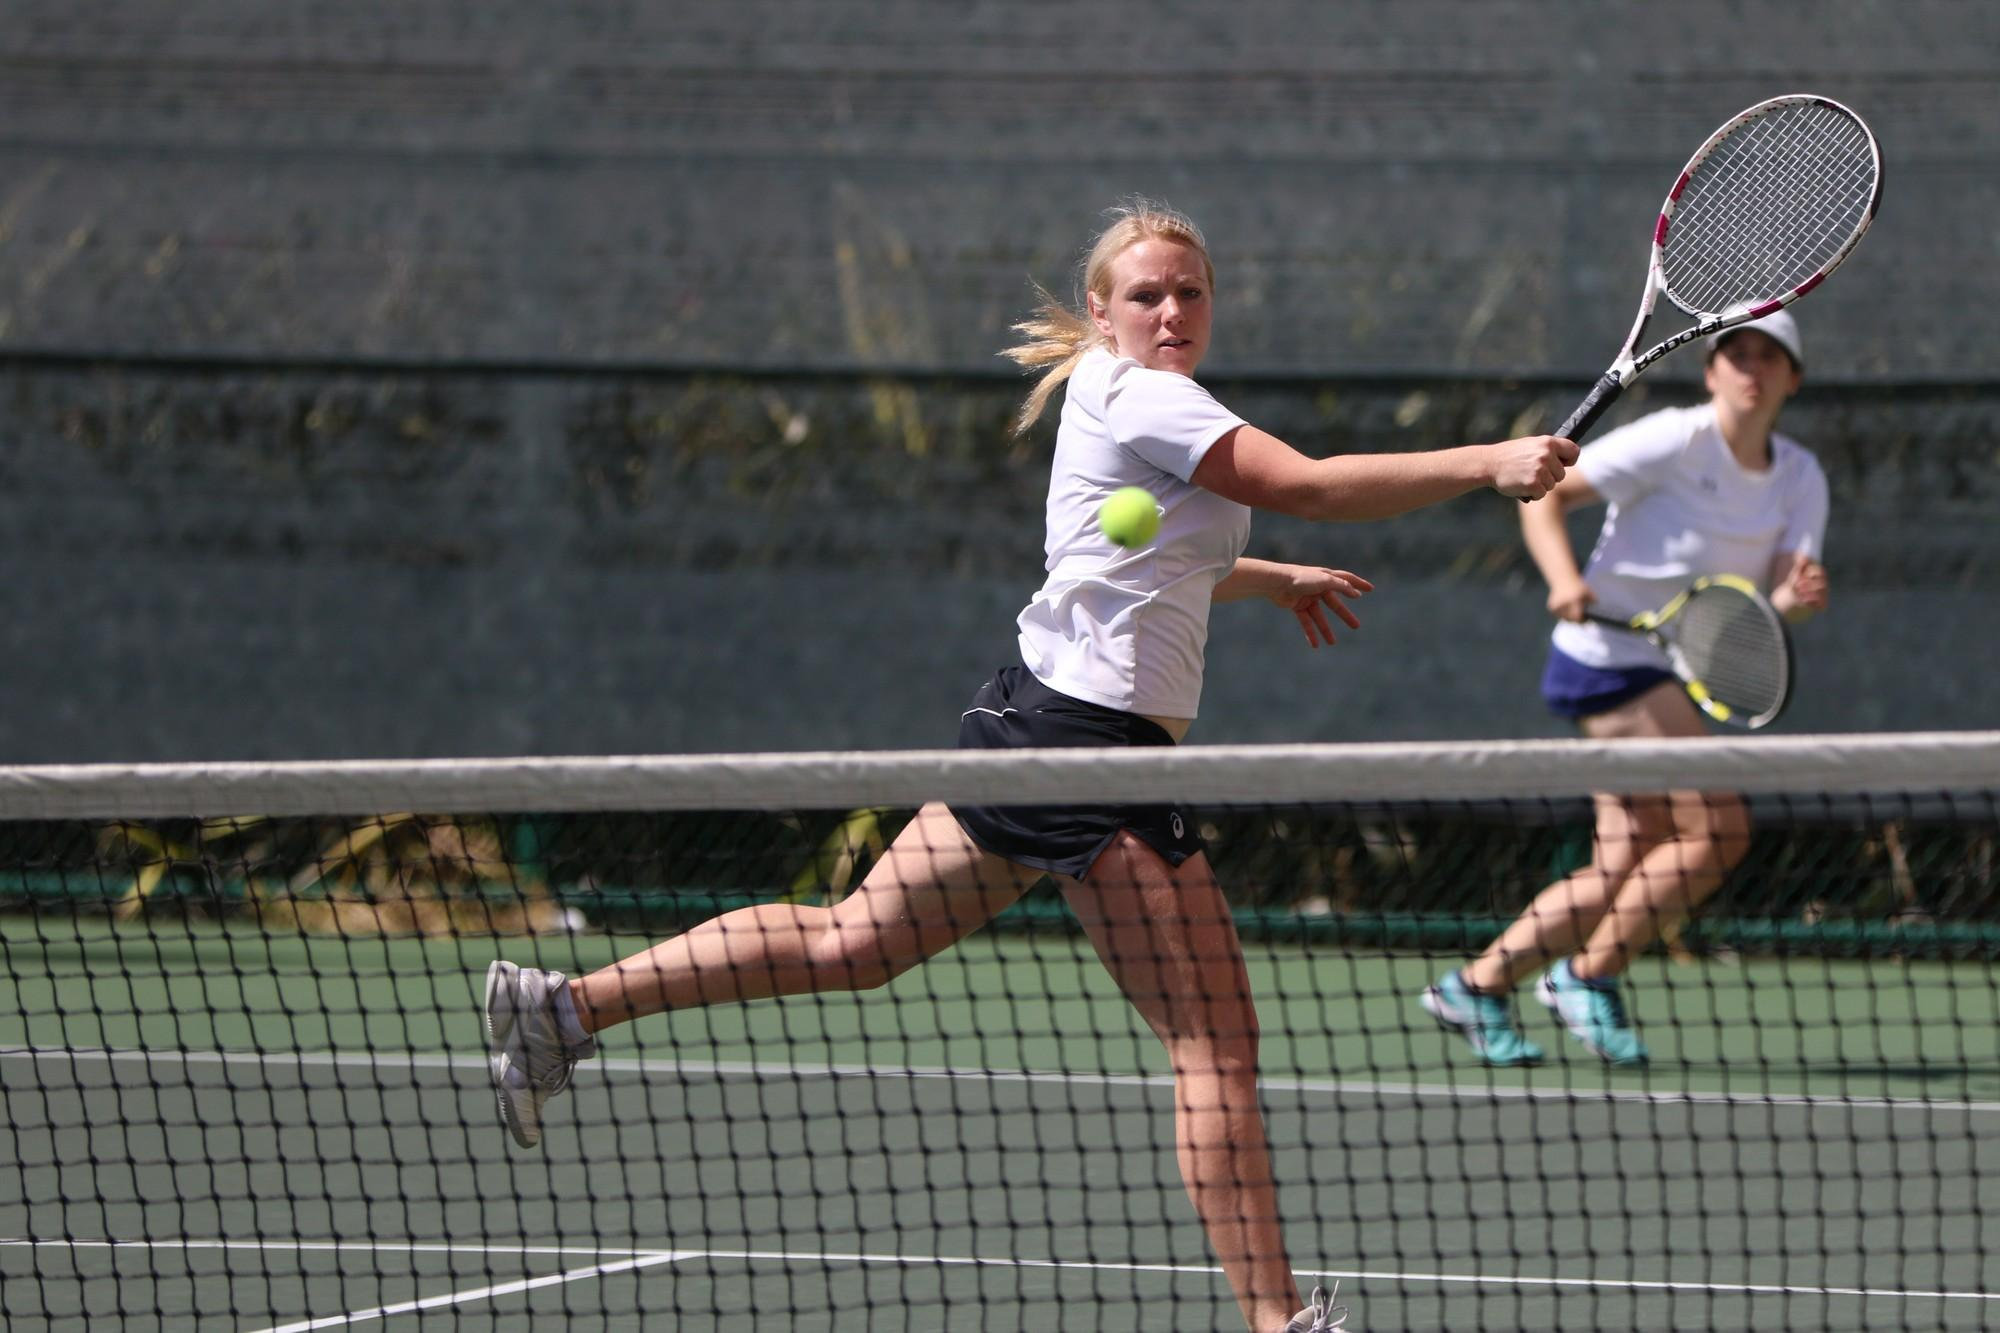 El Camino women's tennis team ends season with loss to Rio Hondo College